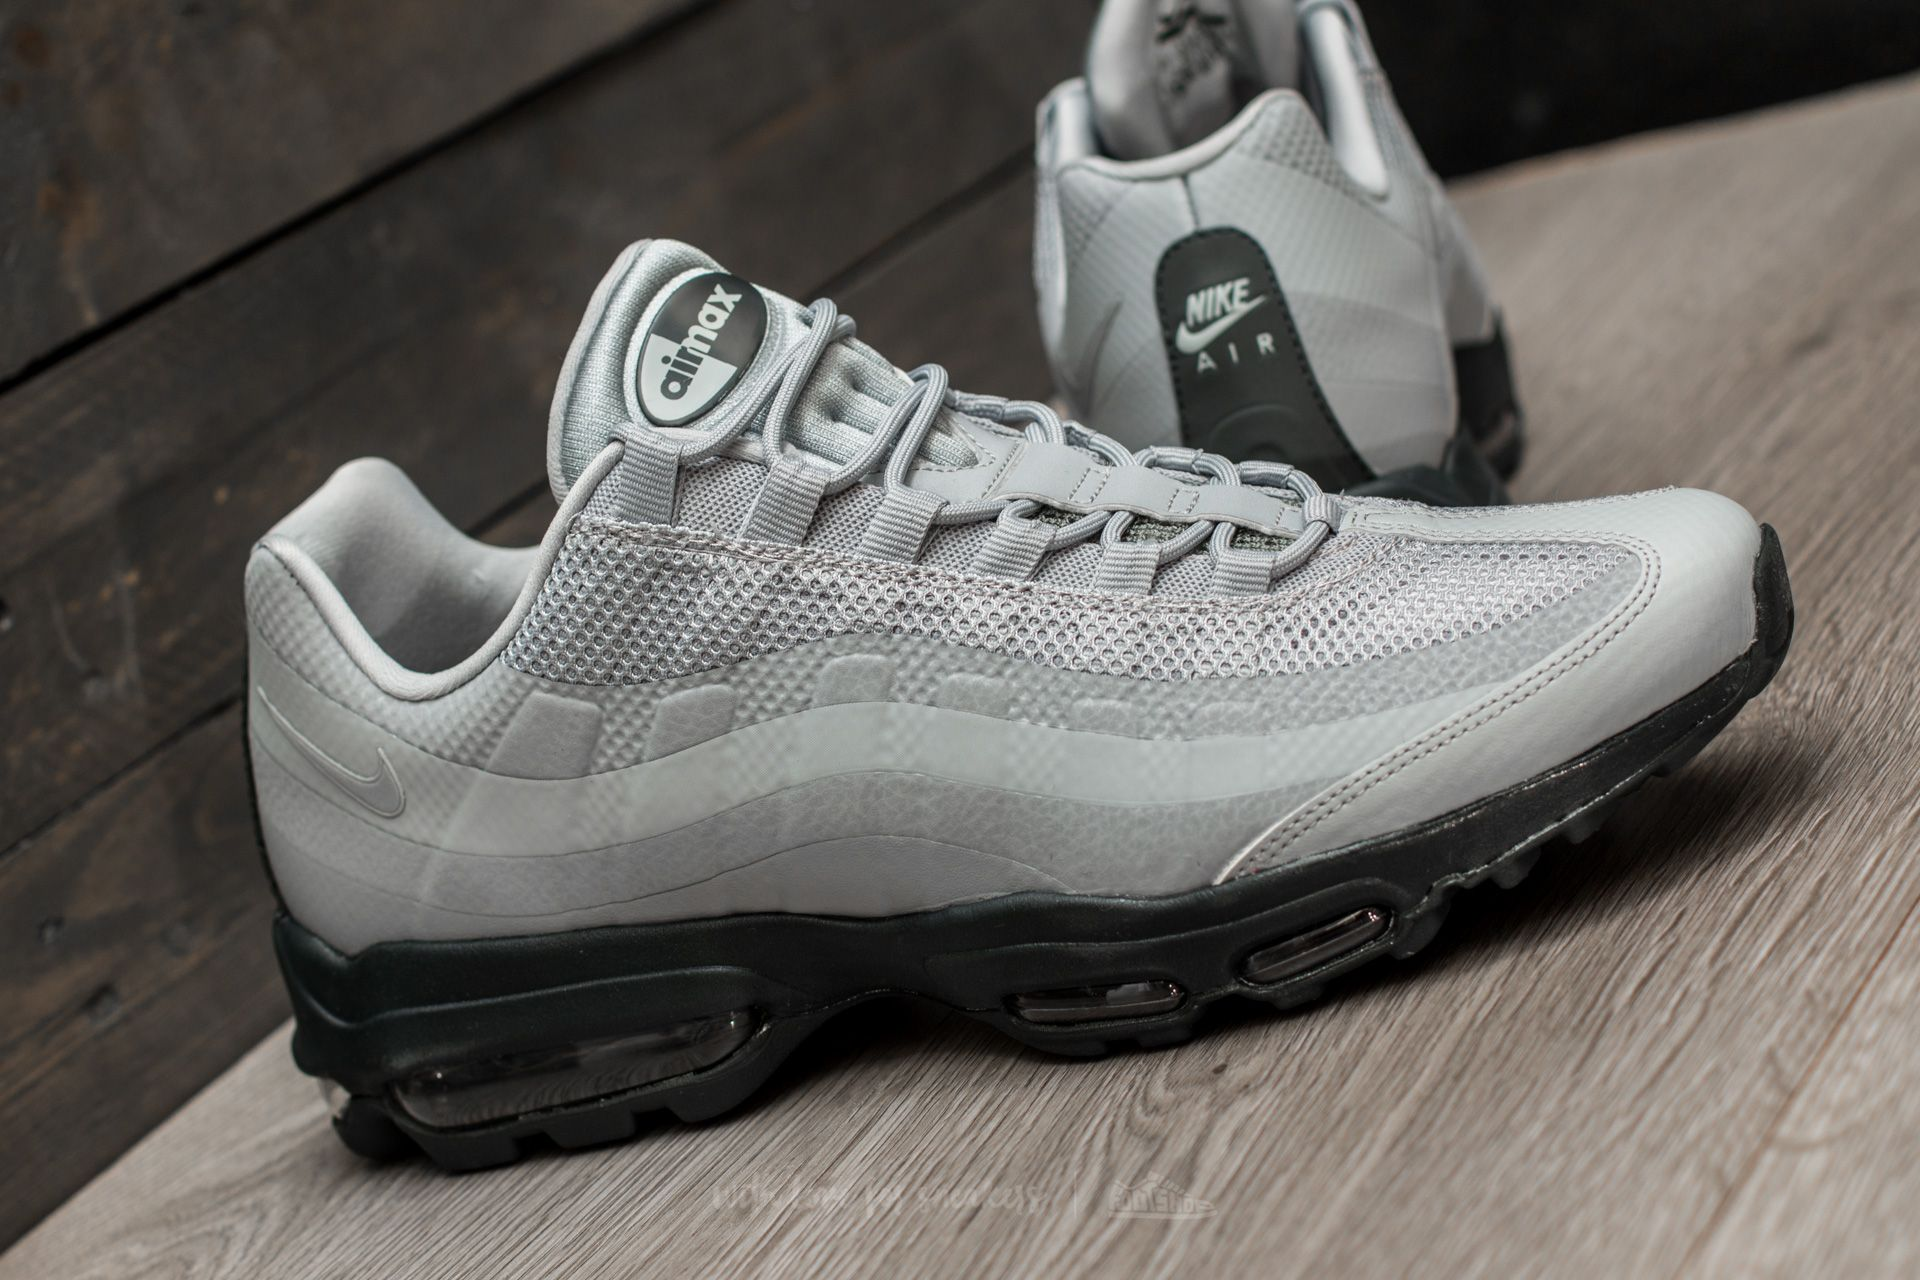 nike air max 95 ultra essential trainer cool grey / anthracite